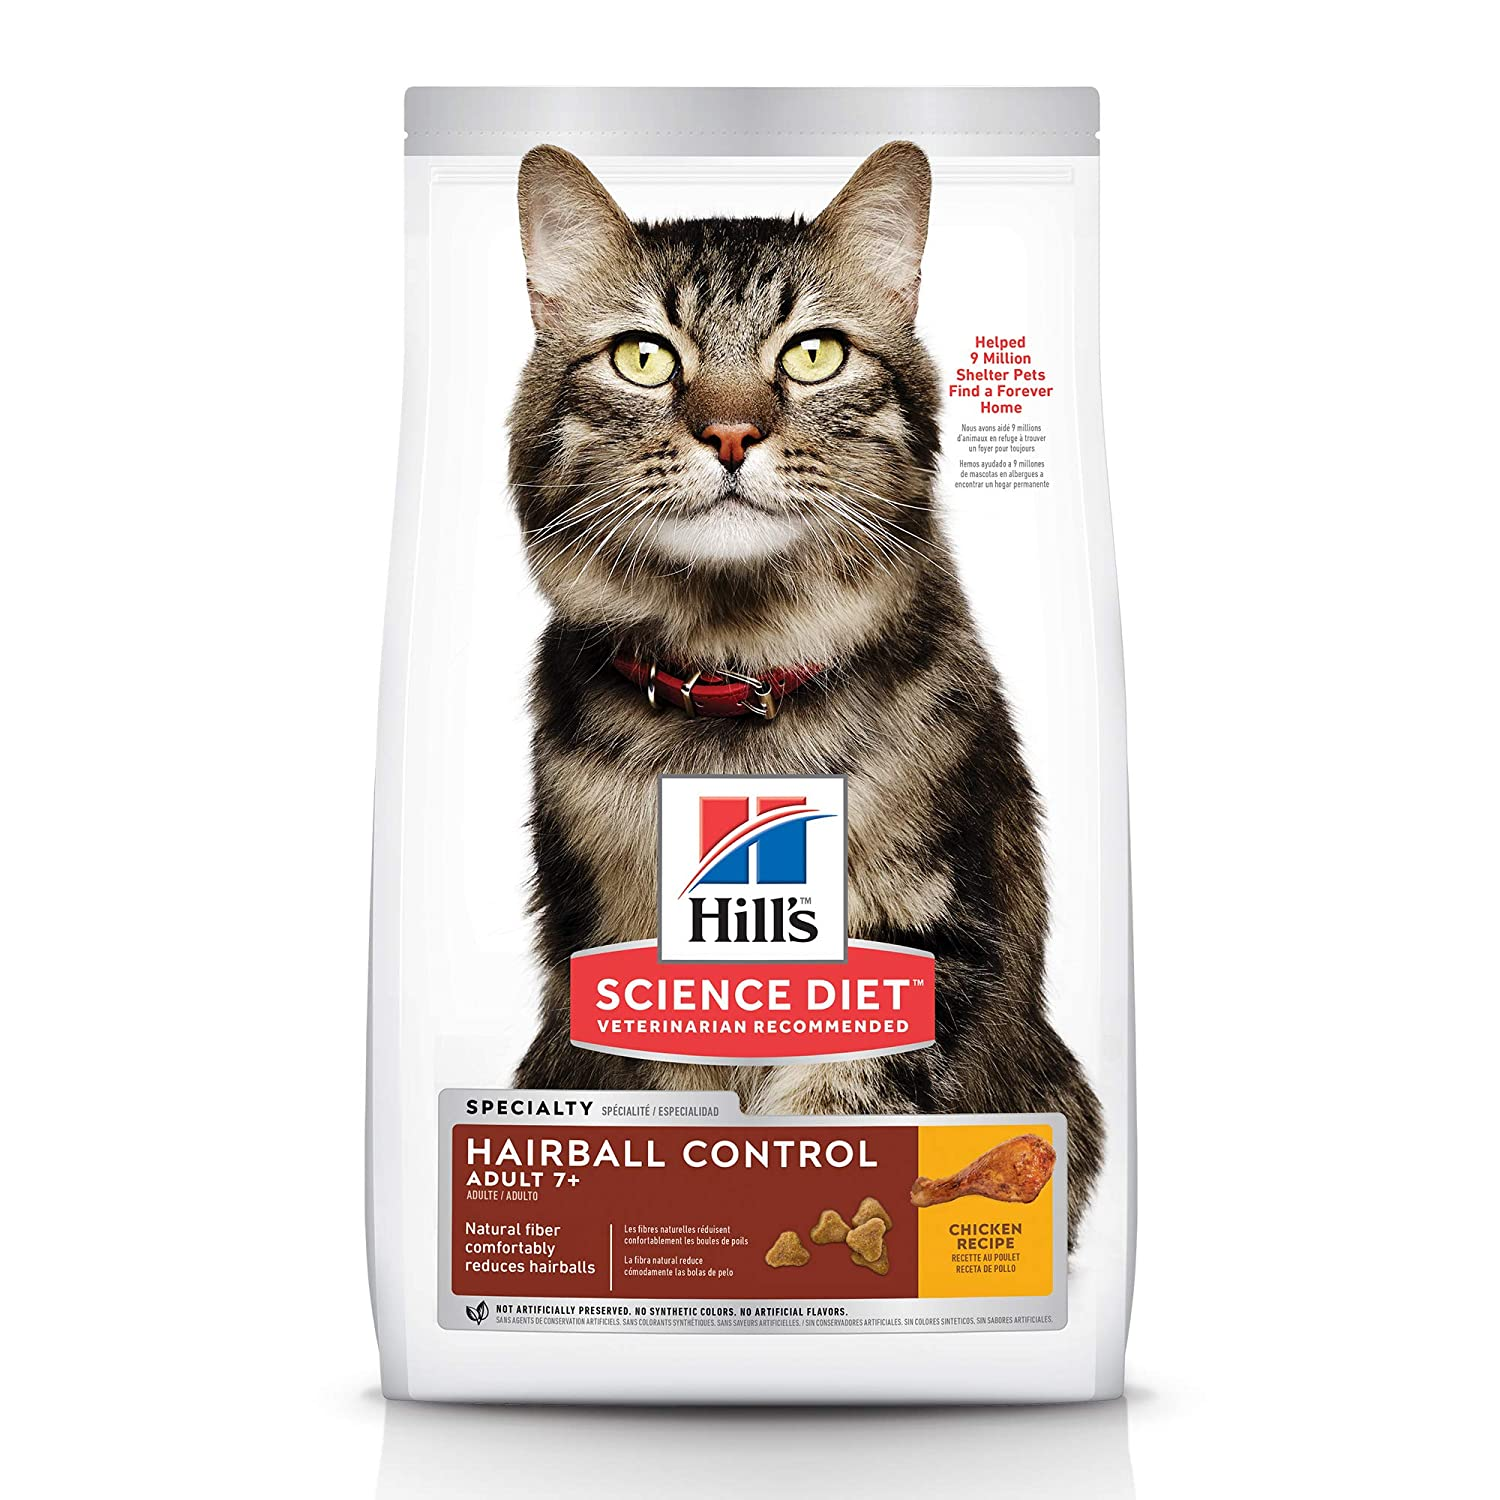 Hills Science Diet Dry Cat Food, Adult 7+ for Senior Cats, Hairball Control, Chicken Recipe